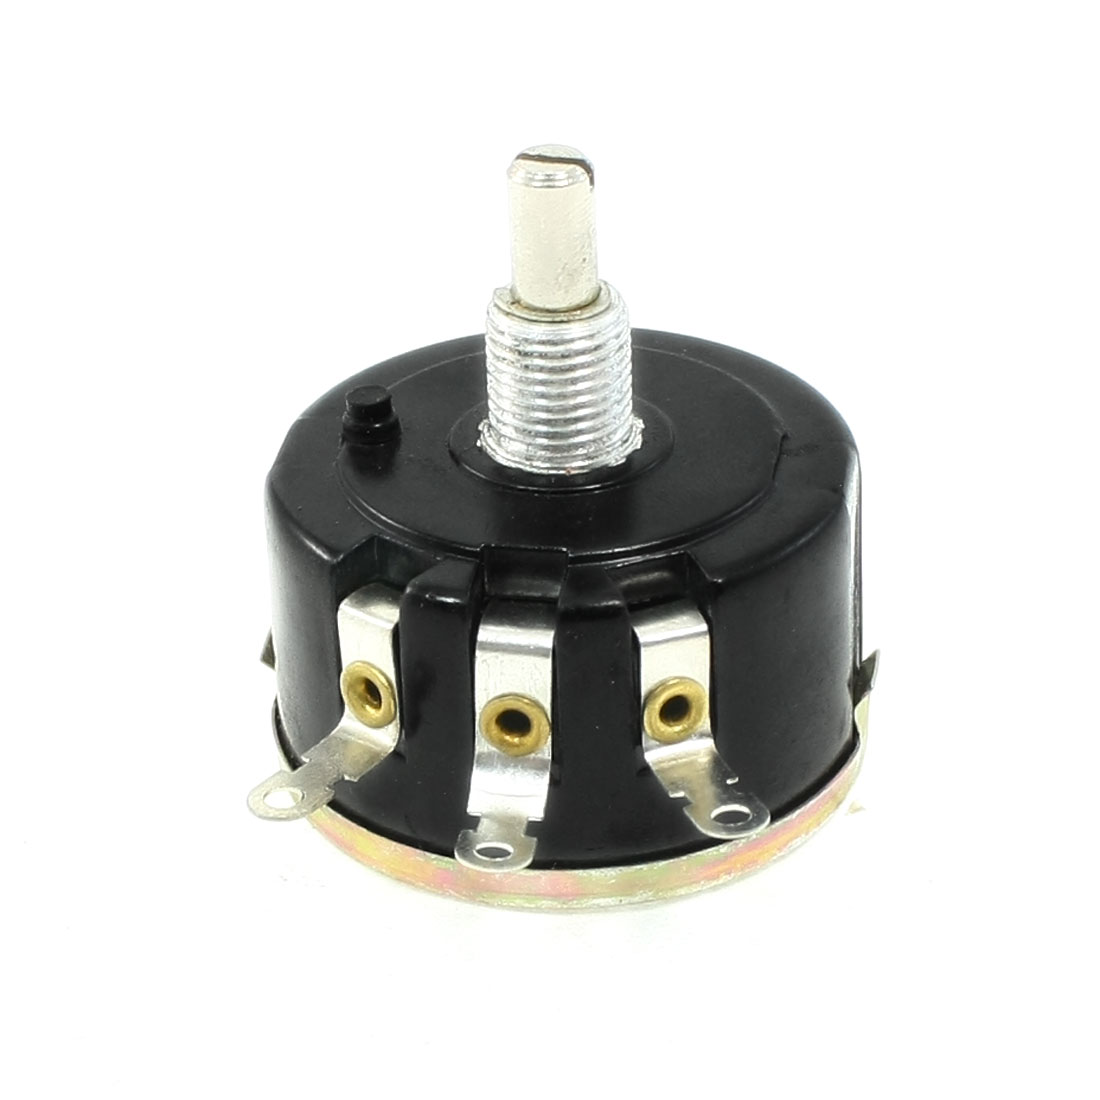 47K ohm Single Turn Carbon Composition Rotary Taper Potentiometer